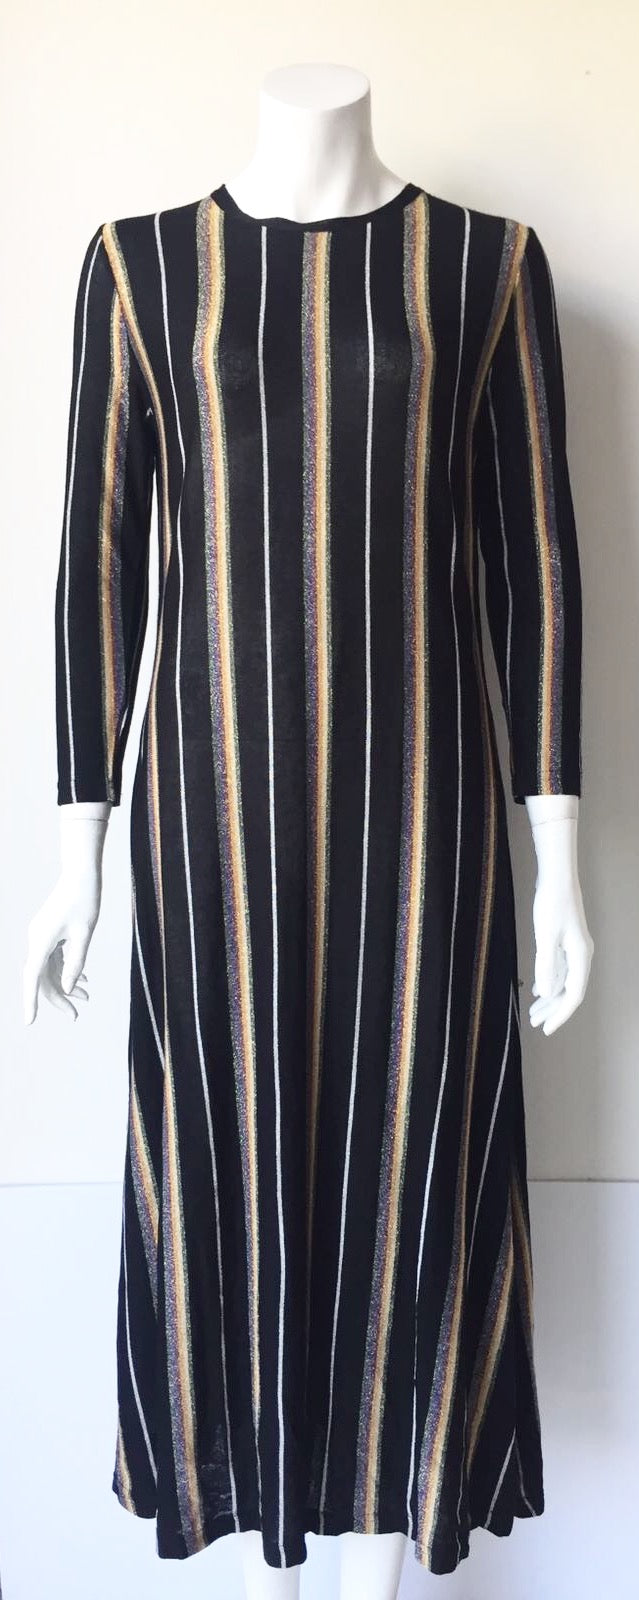 Mango Black Multi-Color Maxi Dress Size M